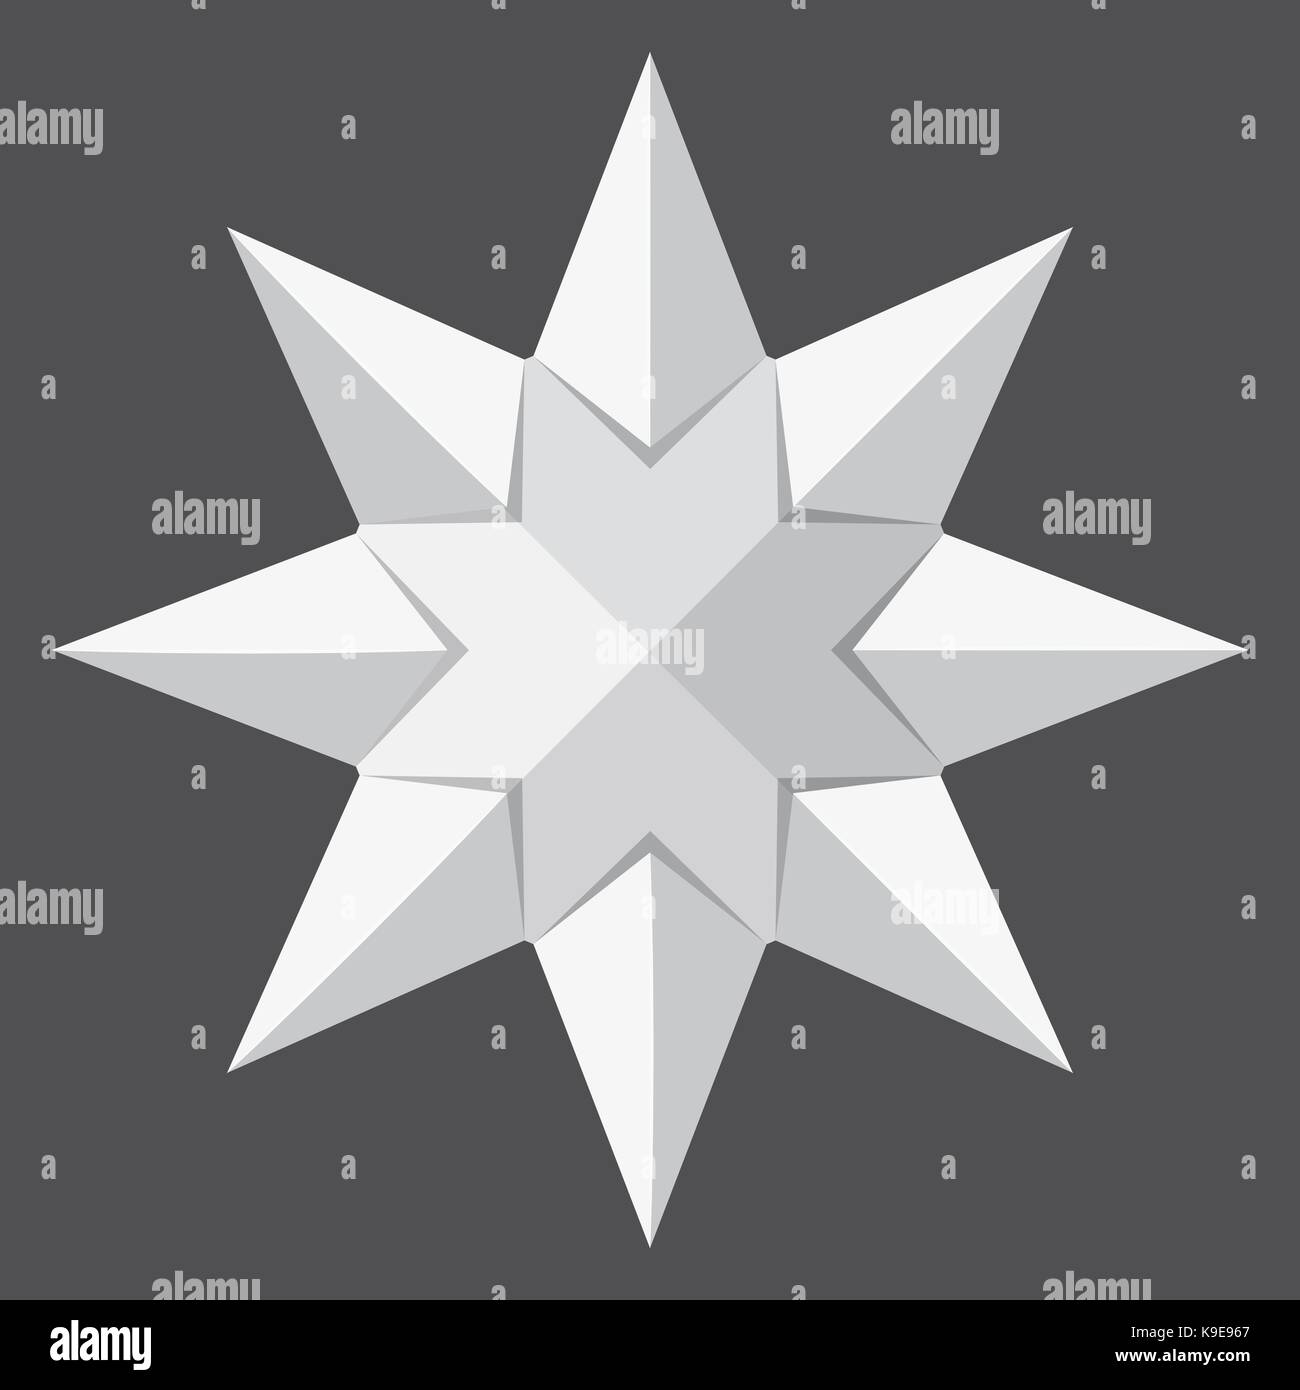 Sun Concept Stock Photos Amp Sun Concept Stock Images Alamy